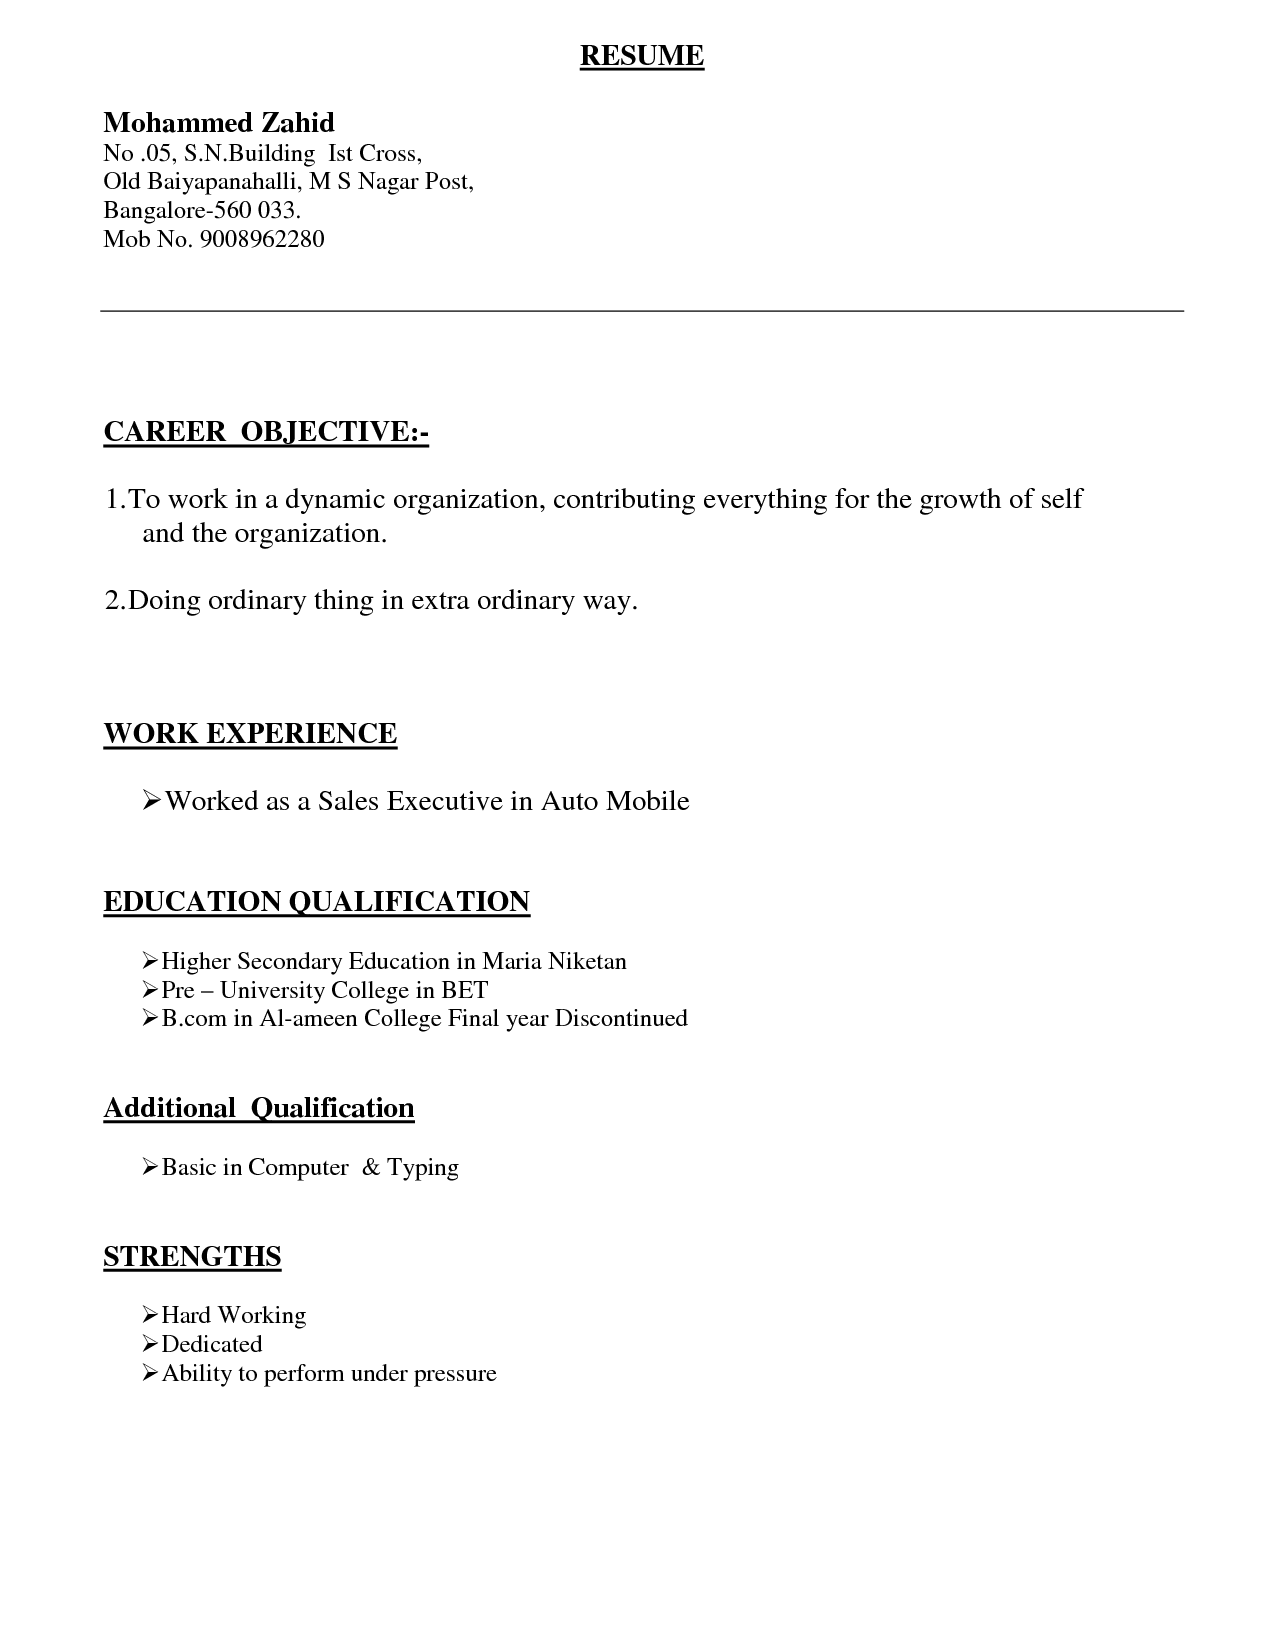 Types Of Resume Templates Kinds Of Resume Examples Pinterest Resume Format And Resume